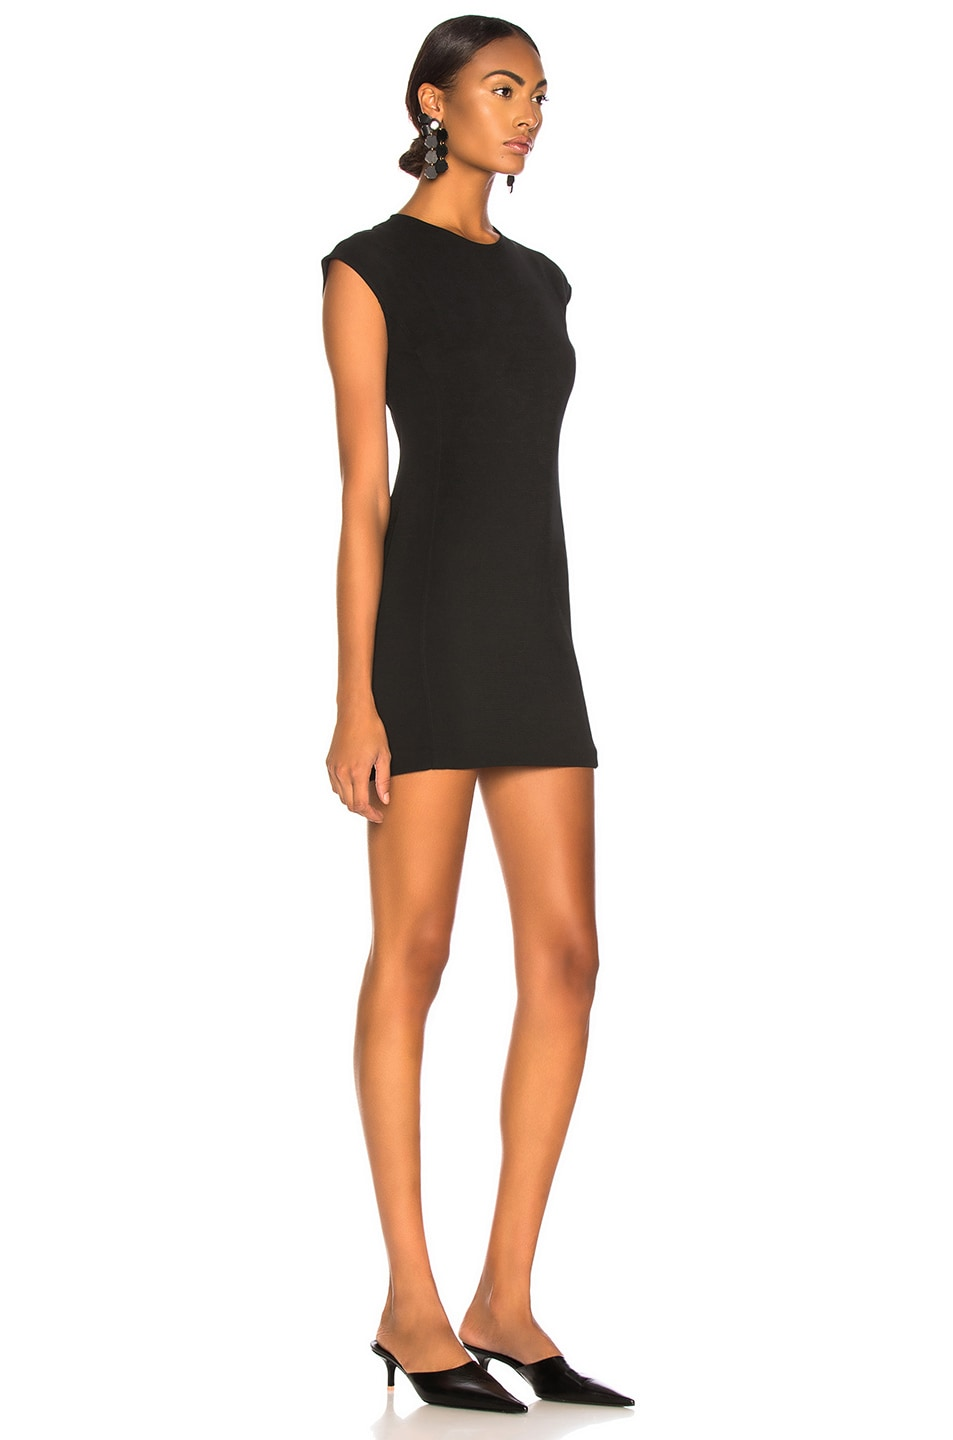 A.L.C. Roda Dress Black low-cost